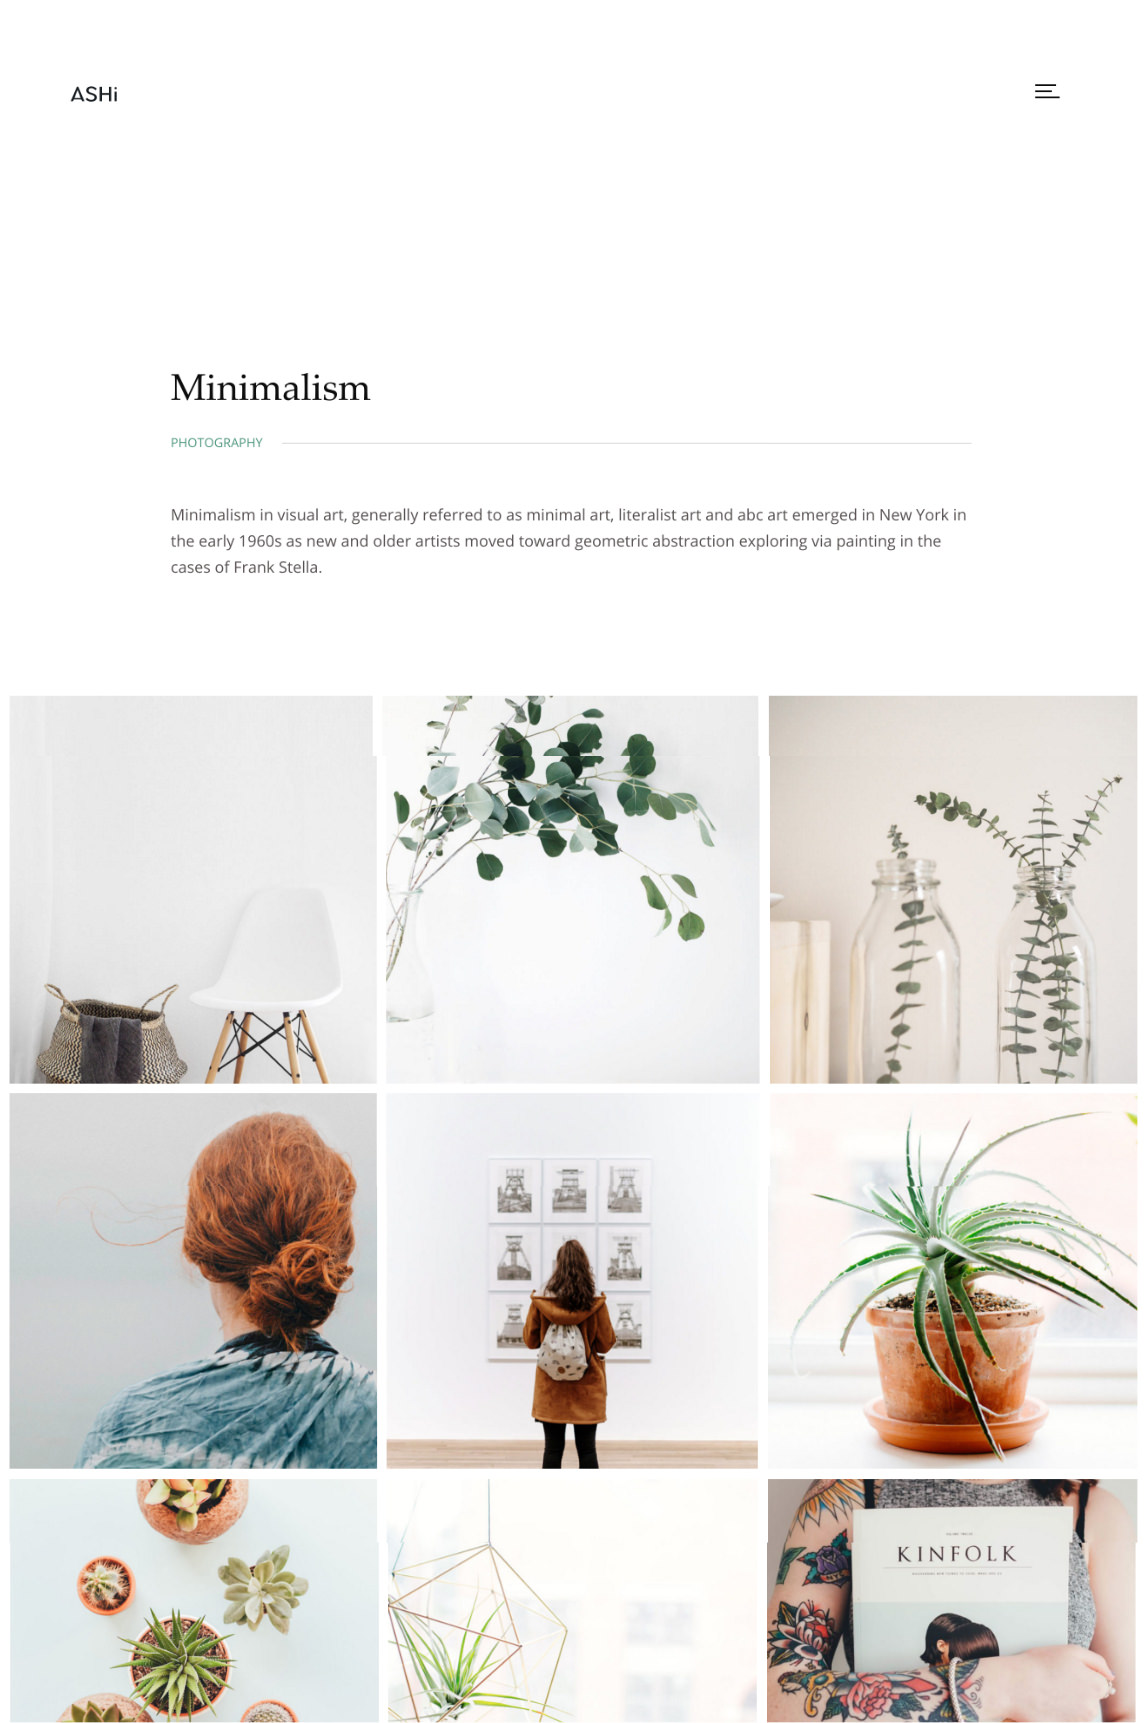 Ashi WordPress theme - grid gallery layout with description